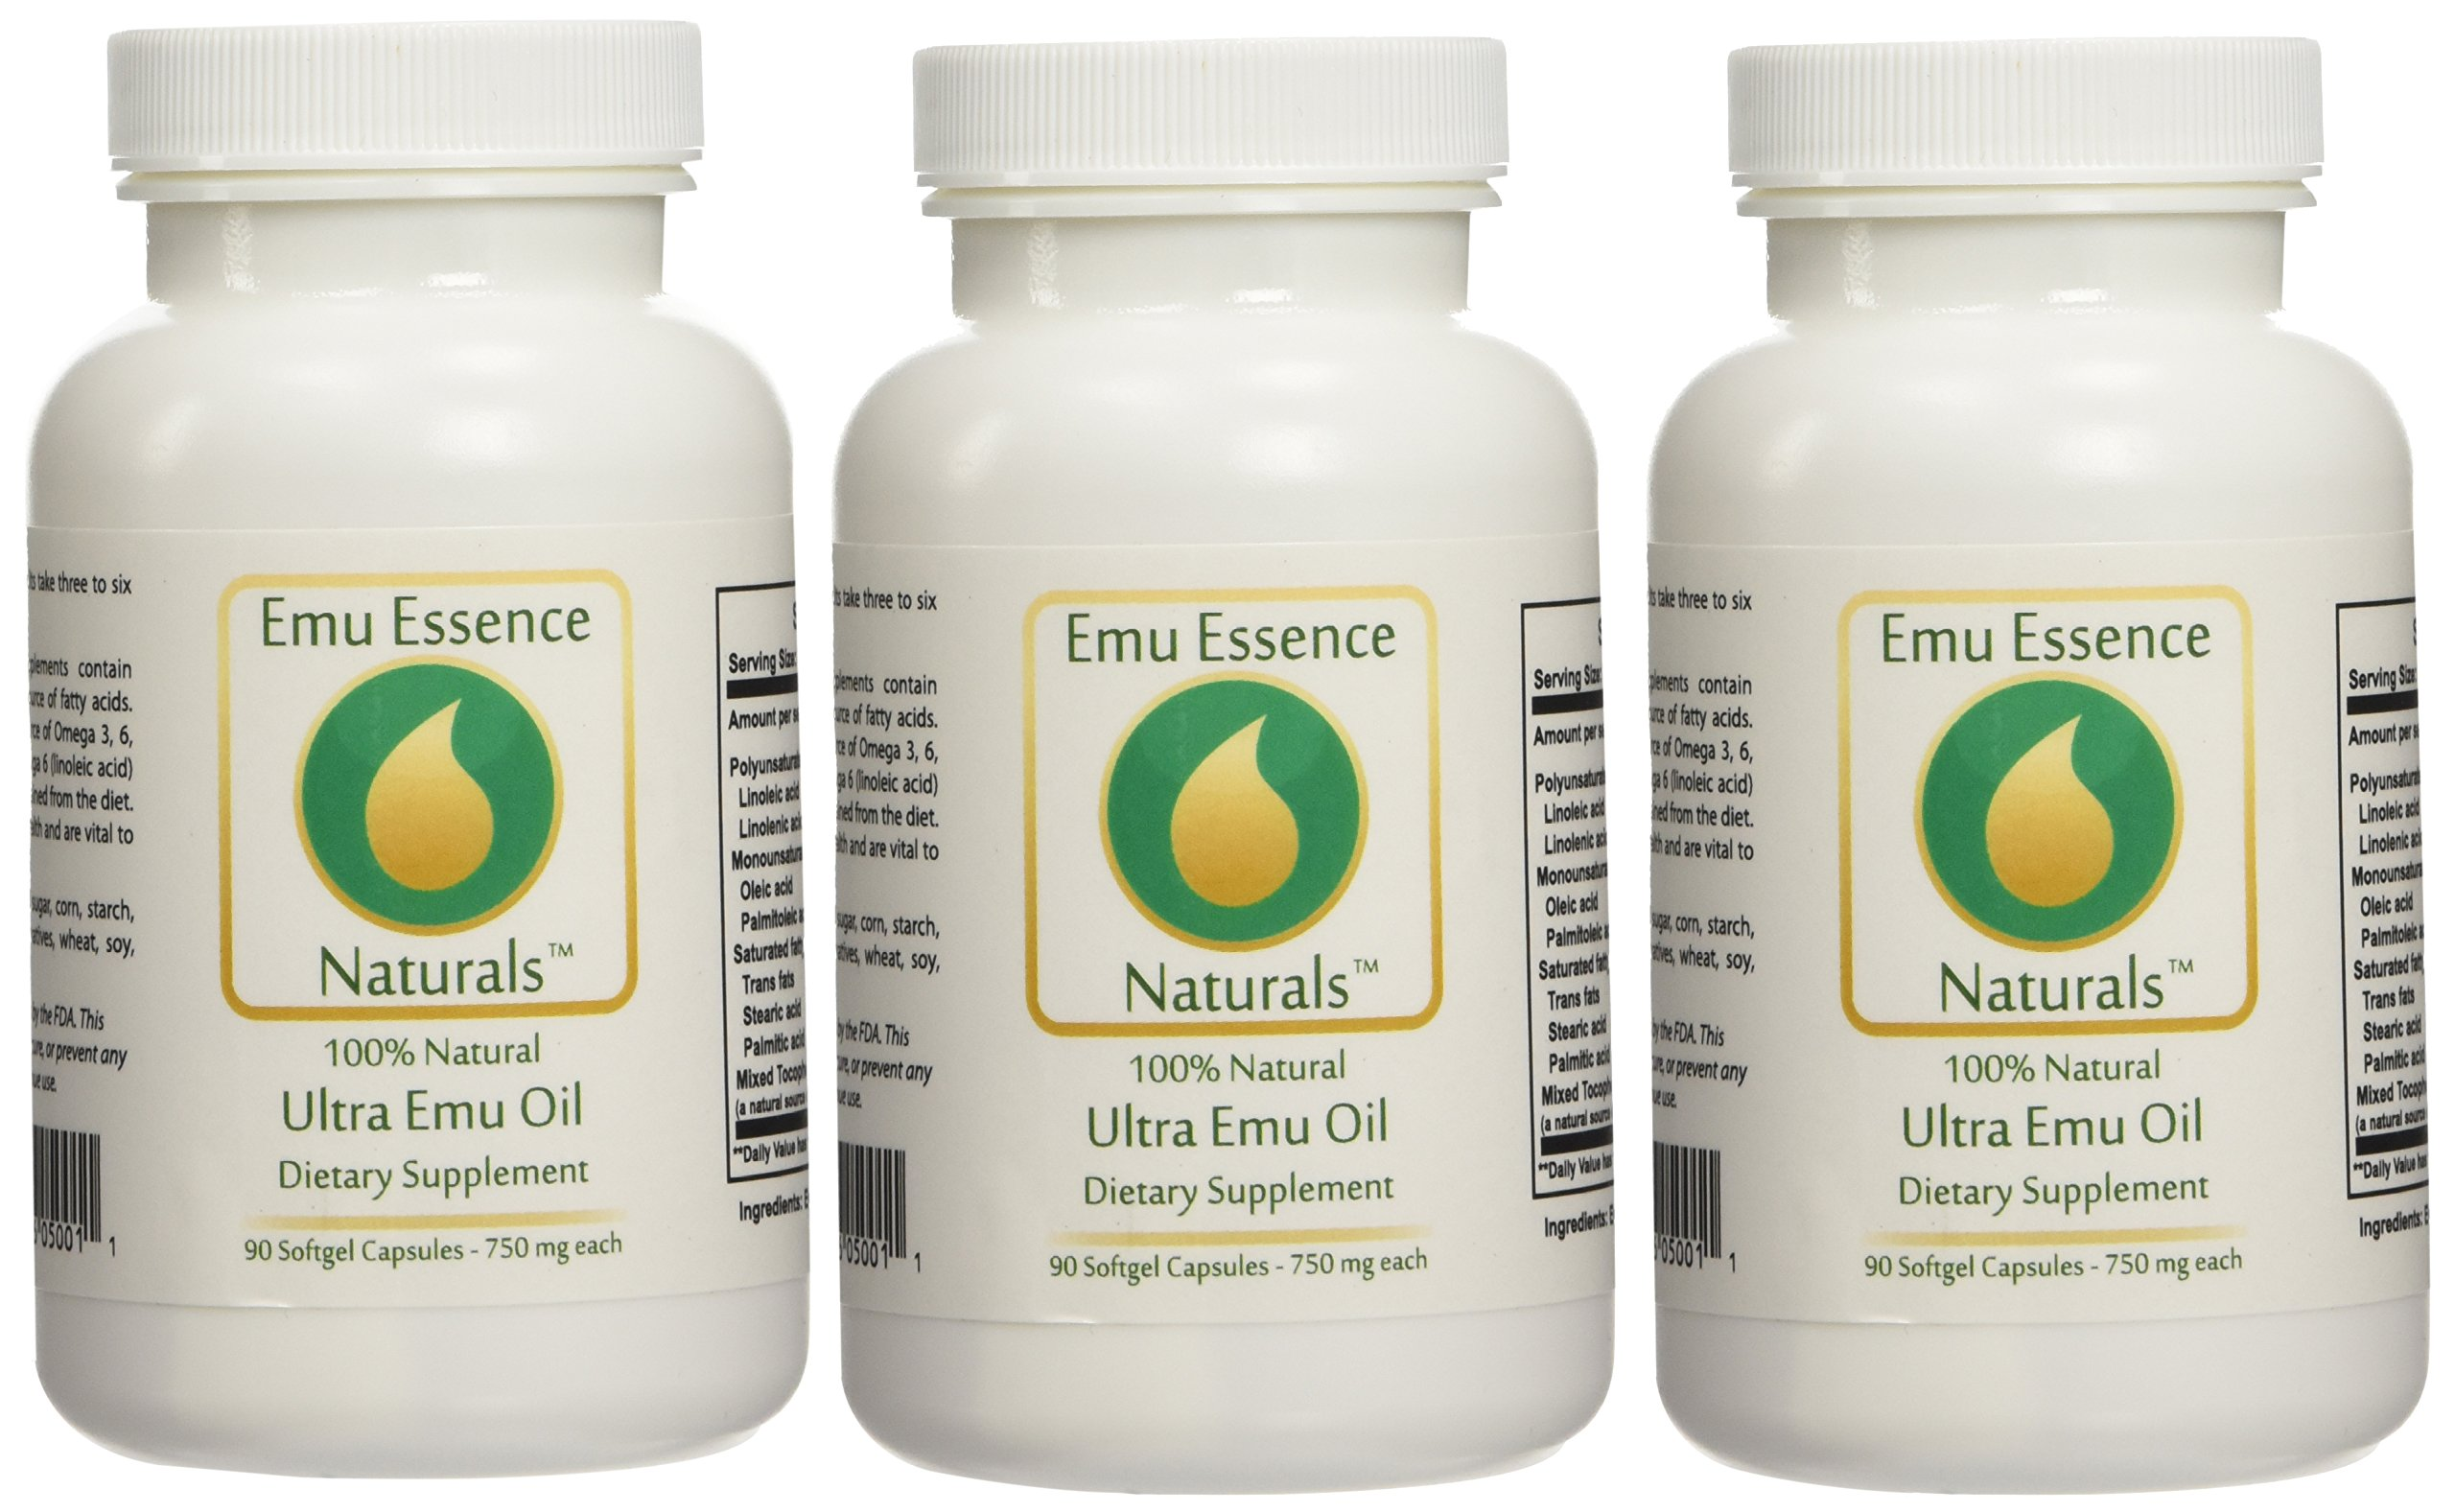 Emu Essence Ultra Emu Oil Dietary Supplements - 3 Pack